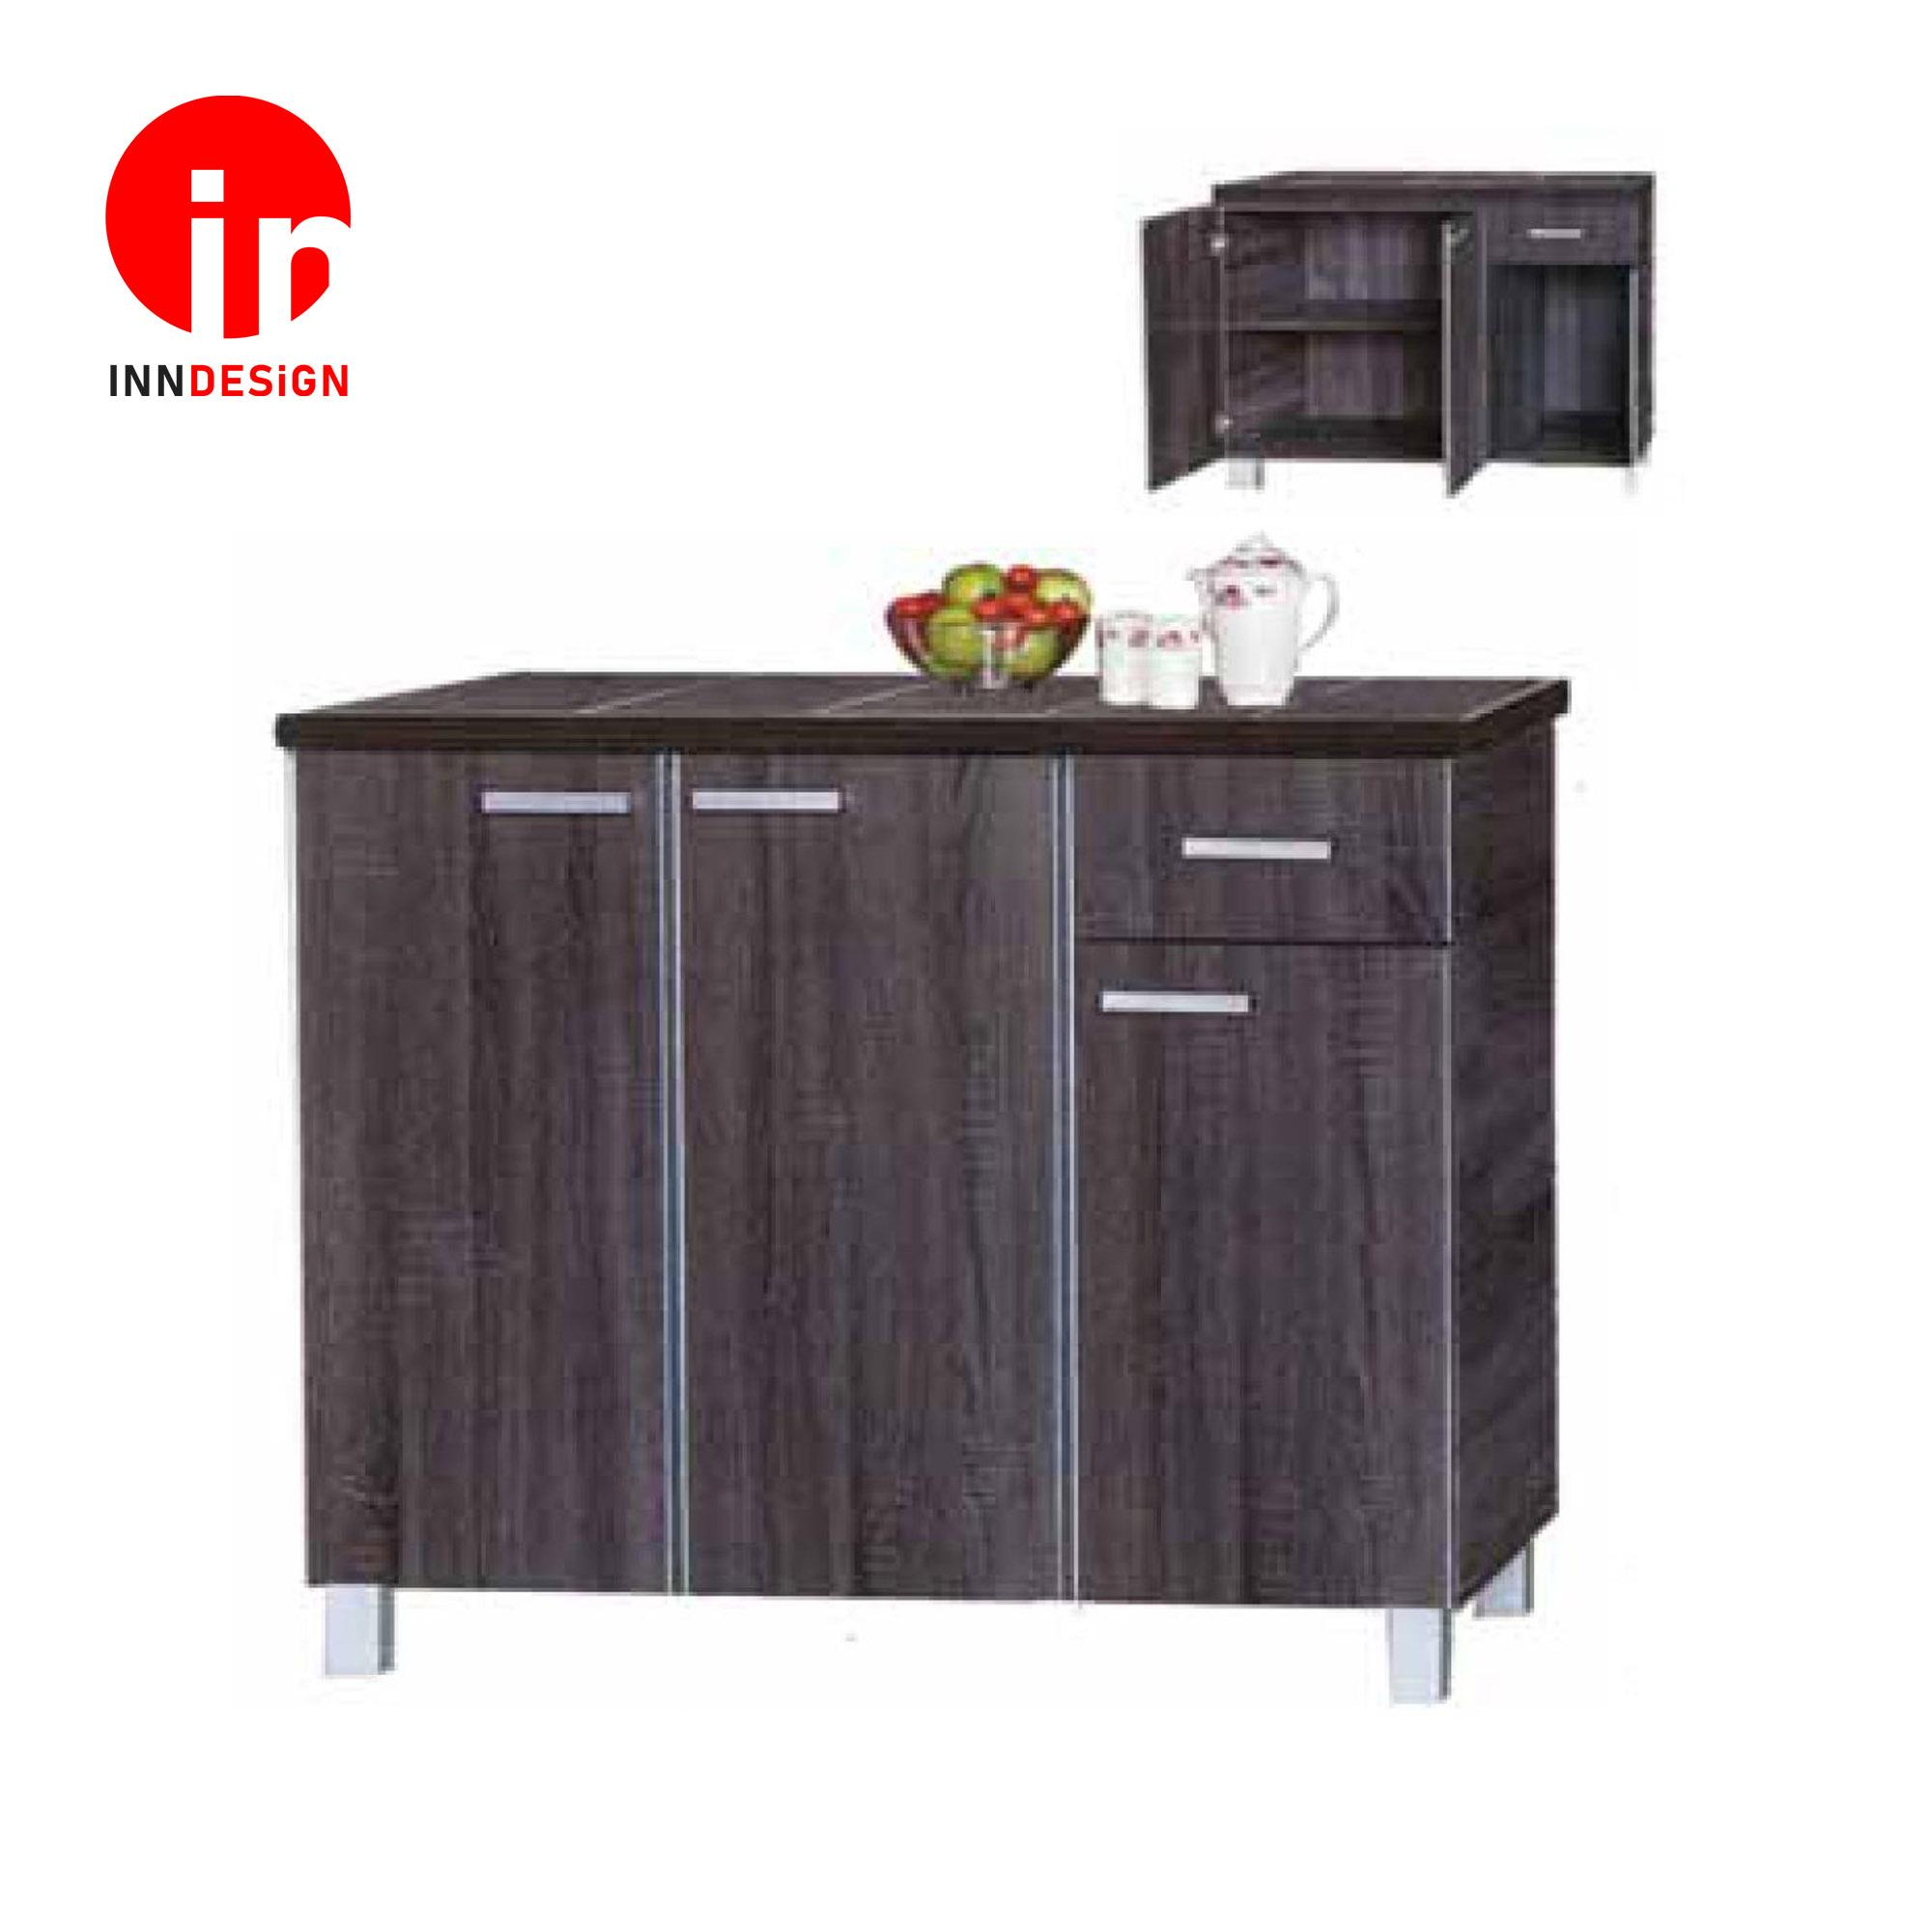 Cassiva 3 Doors With Drawer Kitchen Cabinet (Ceramic Tiles Top) (Free Delivery and Installation) (Walnut)